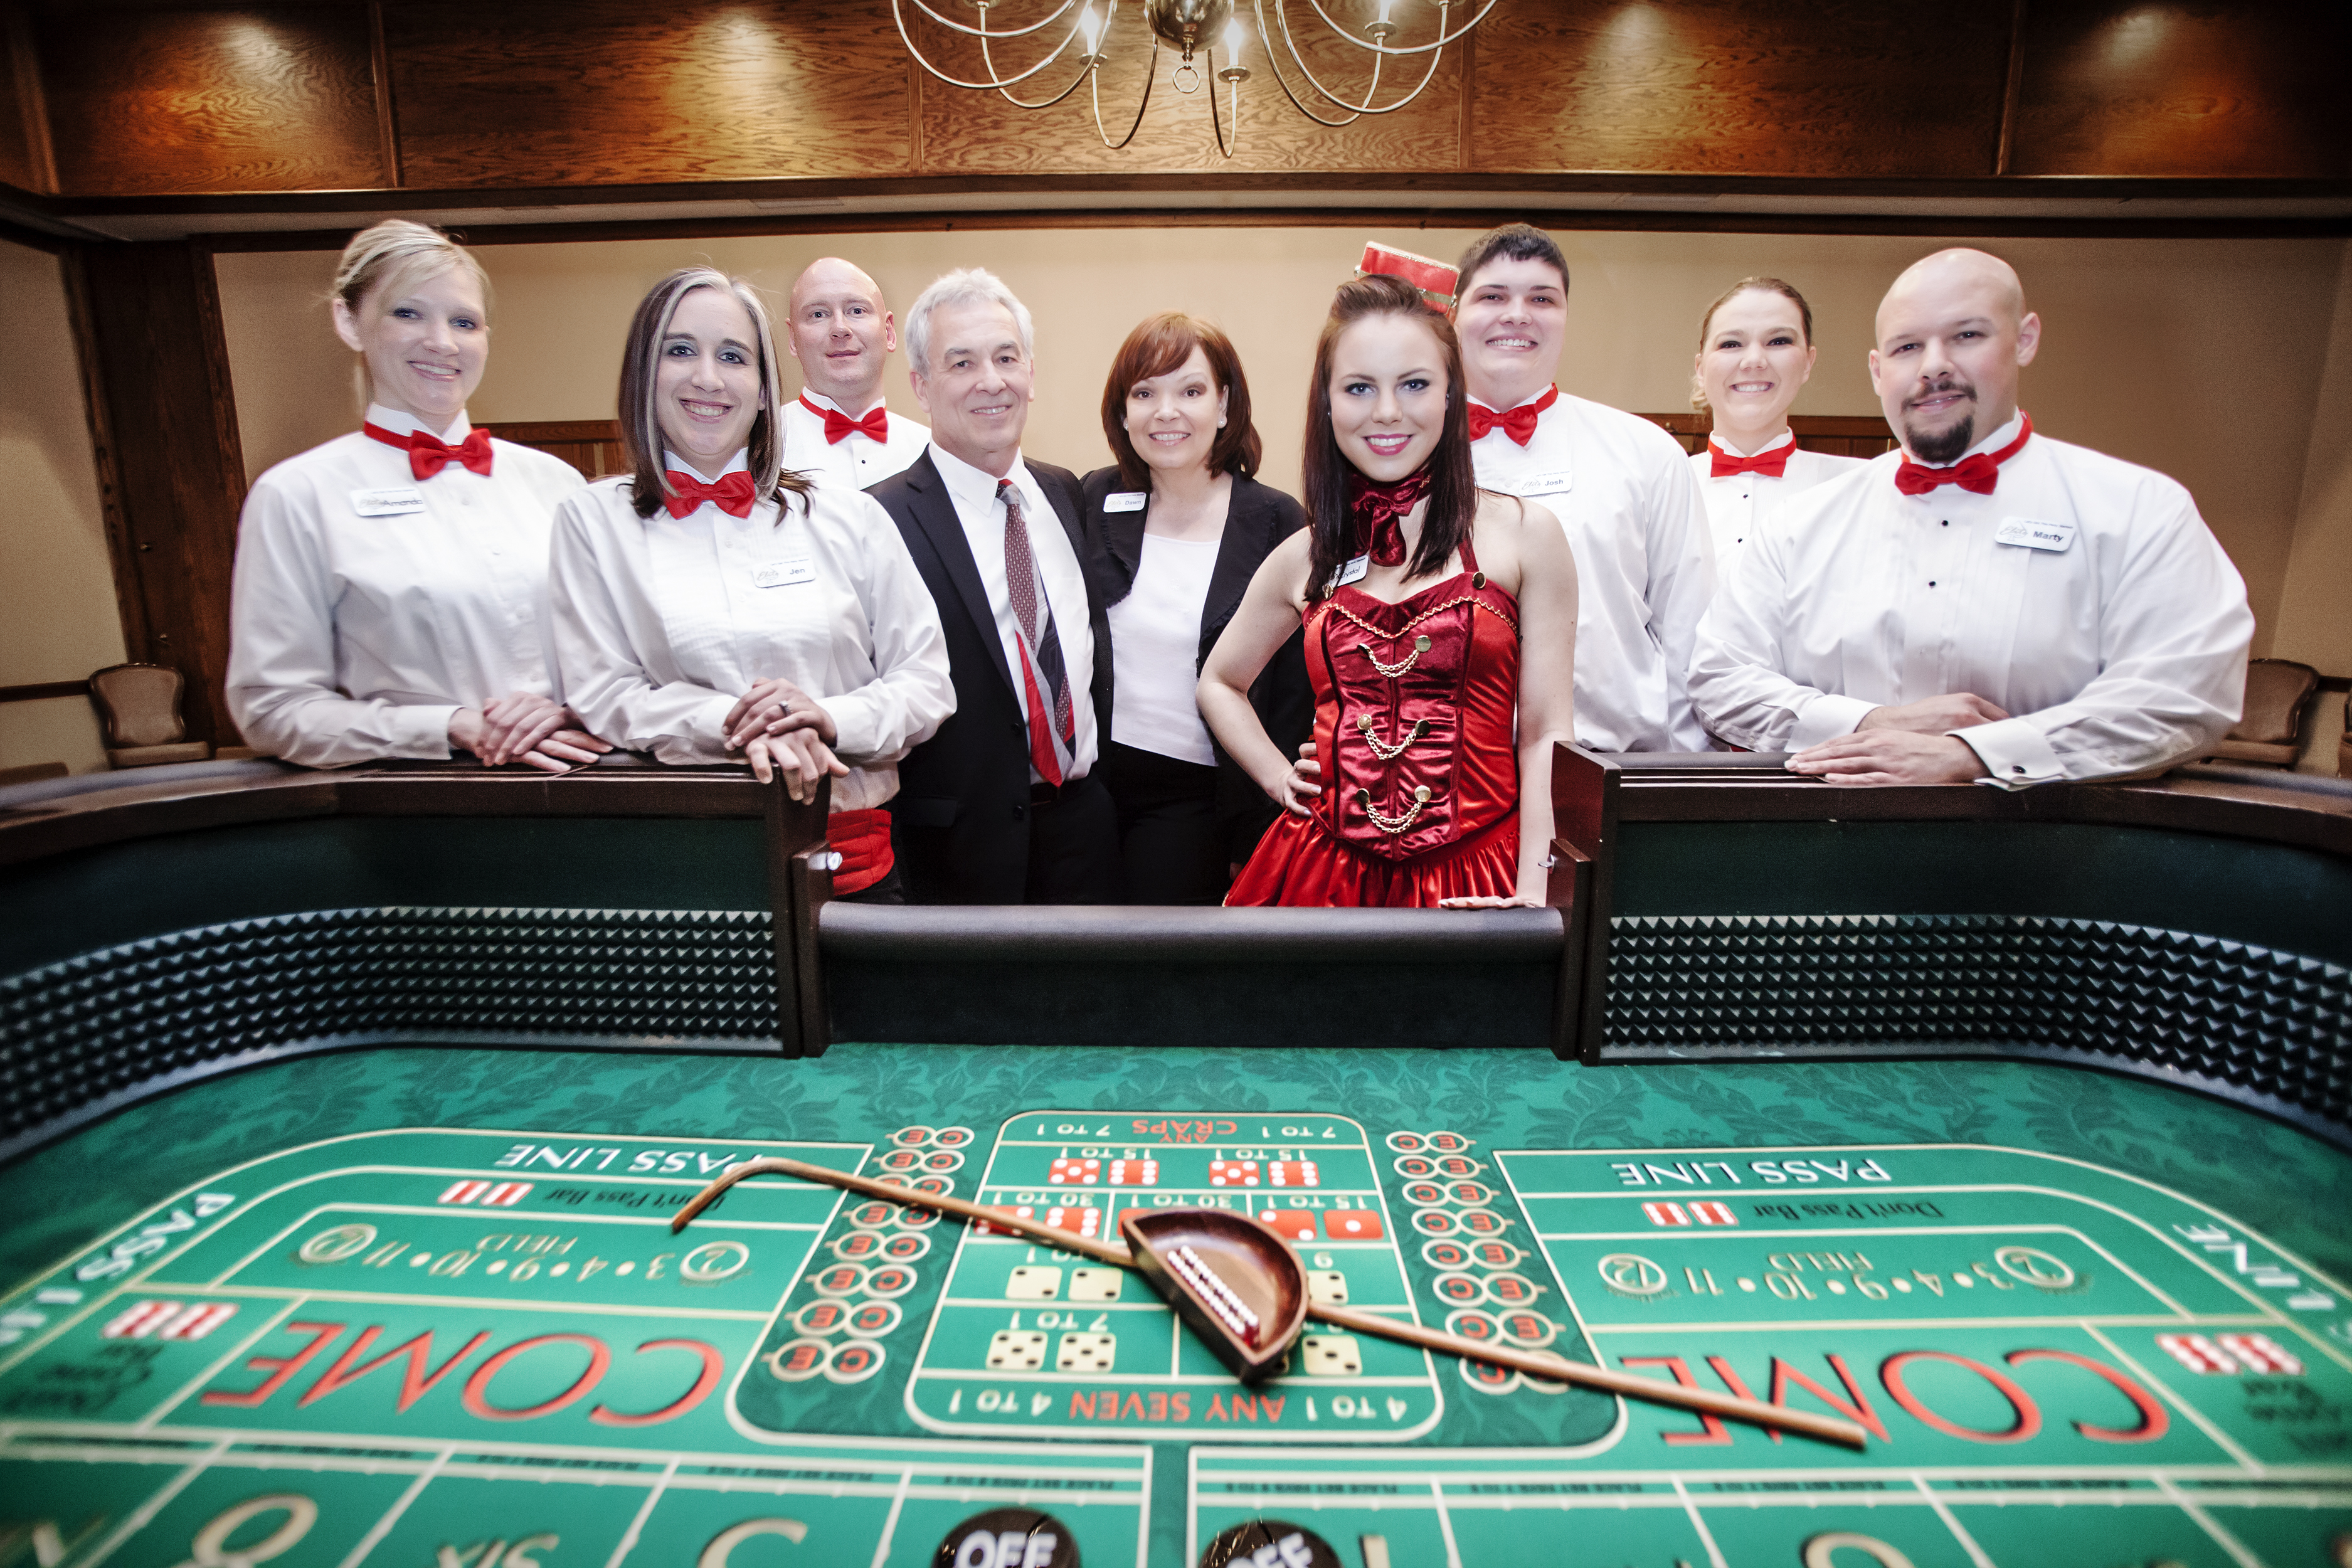 Lottery not considered gambling